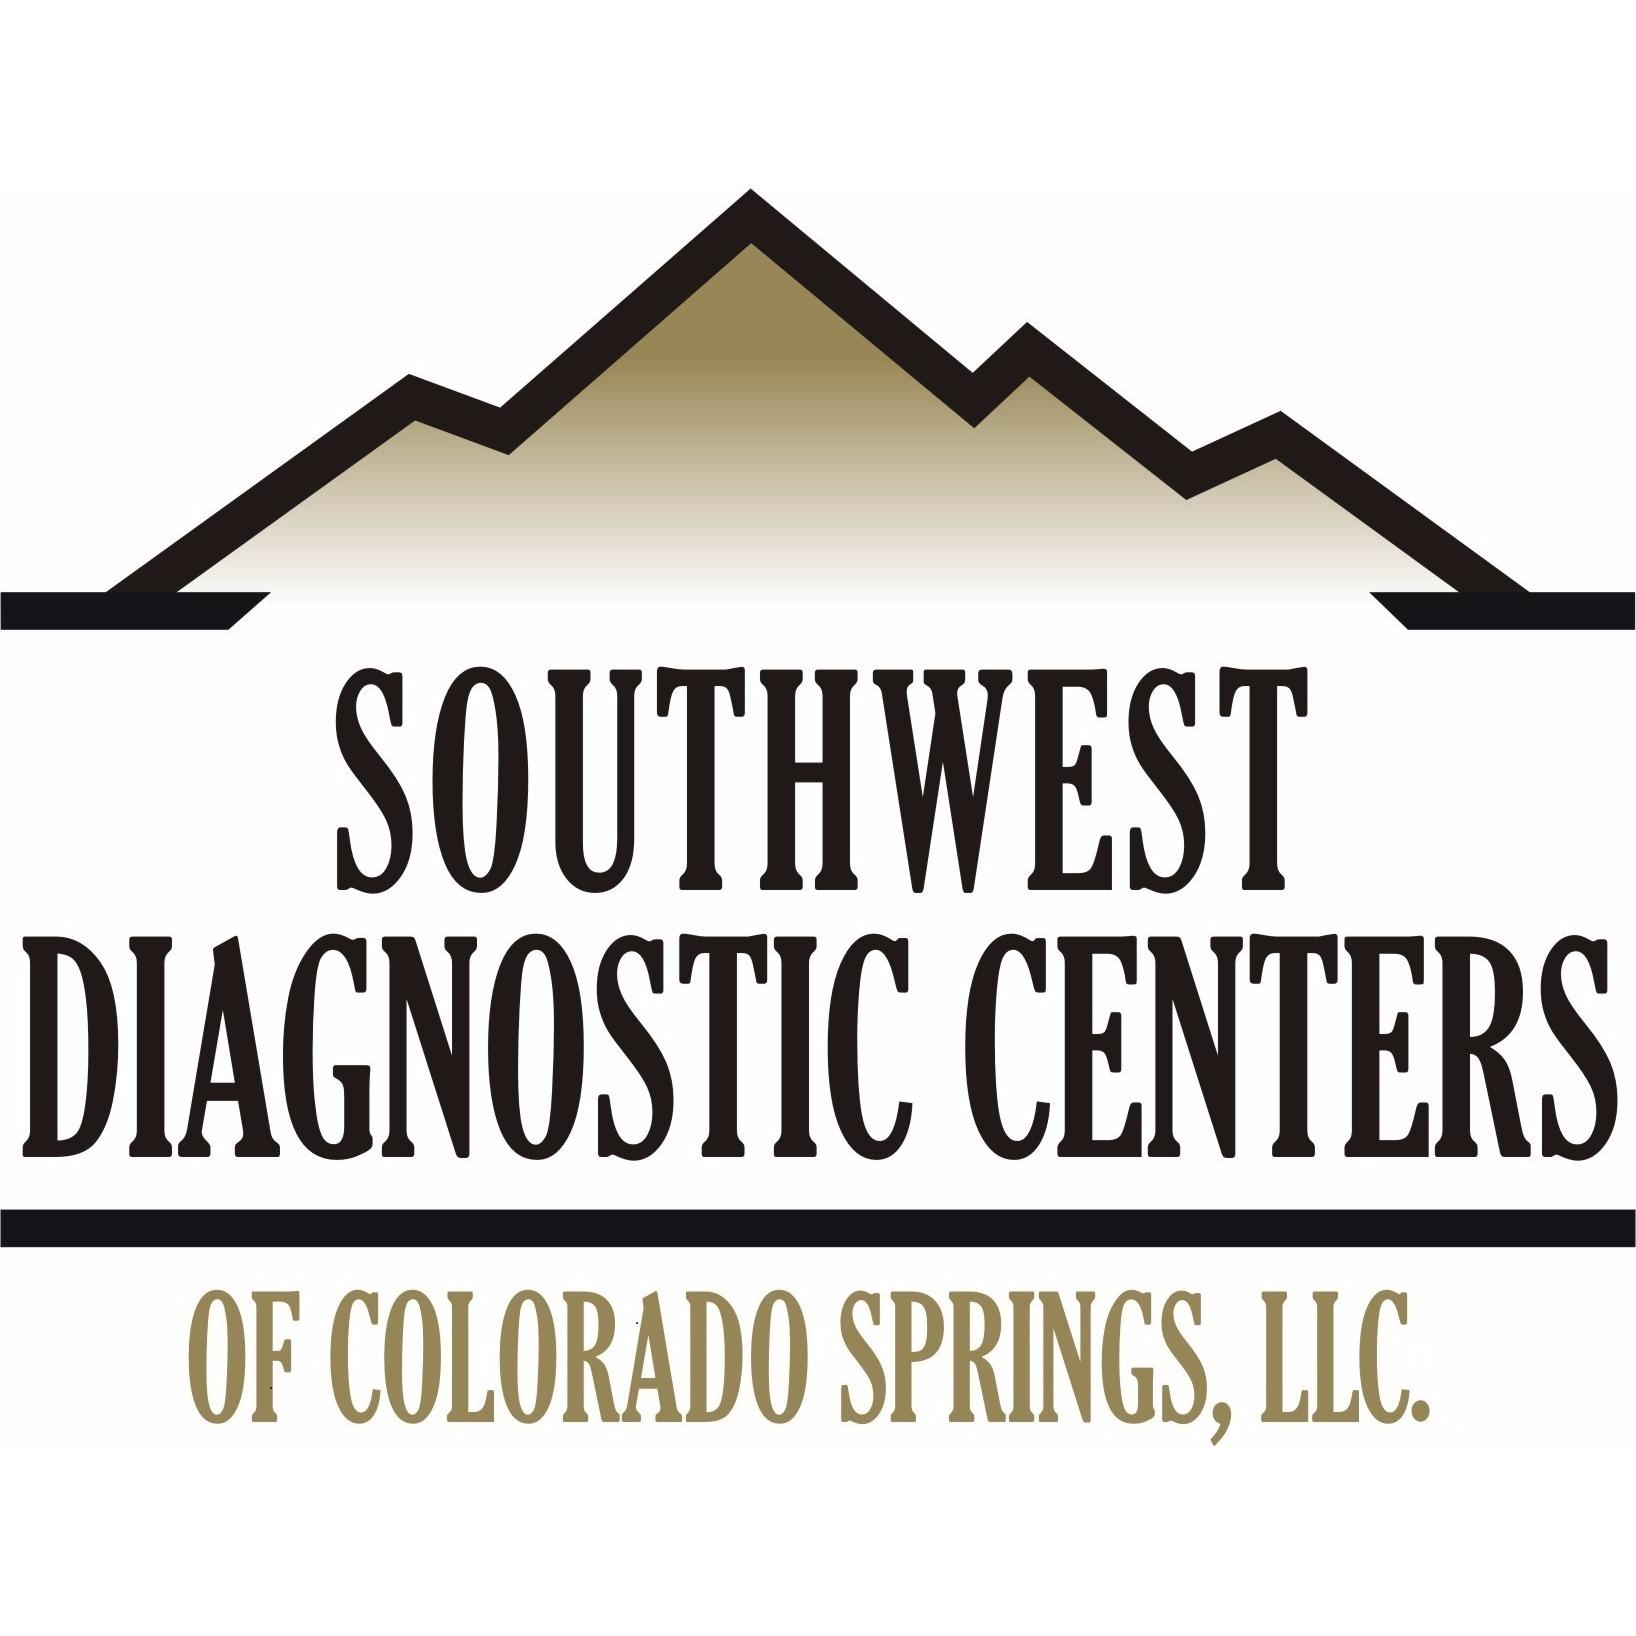 Southwest Diagnostic Centers of Colorado Springs LLC